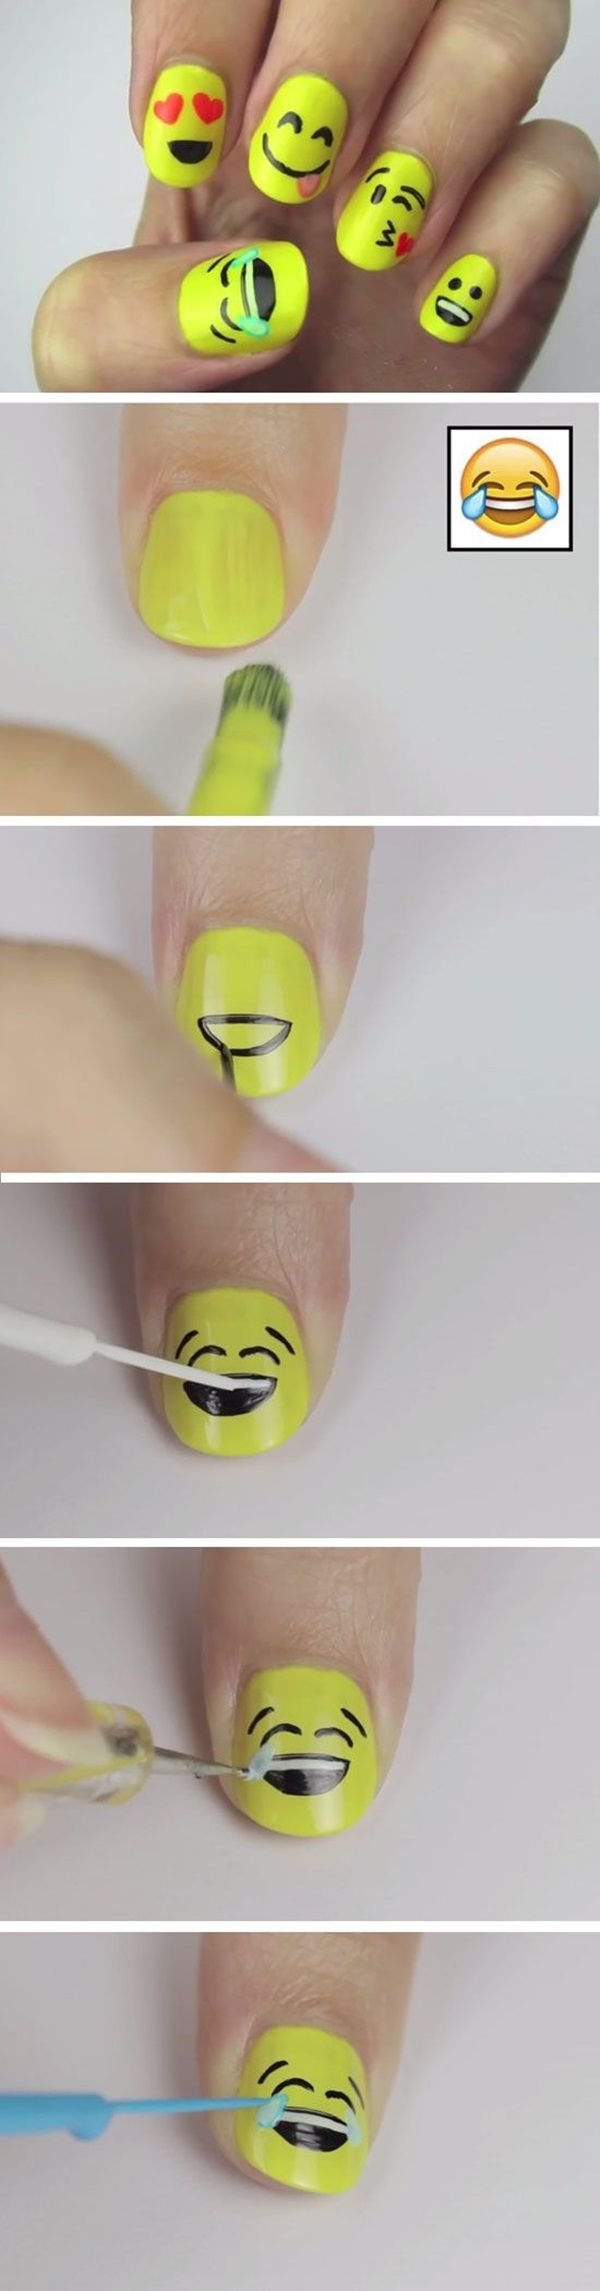 Easy Nail Art Ideas and Designs for Beginners (18)